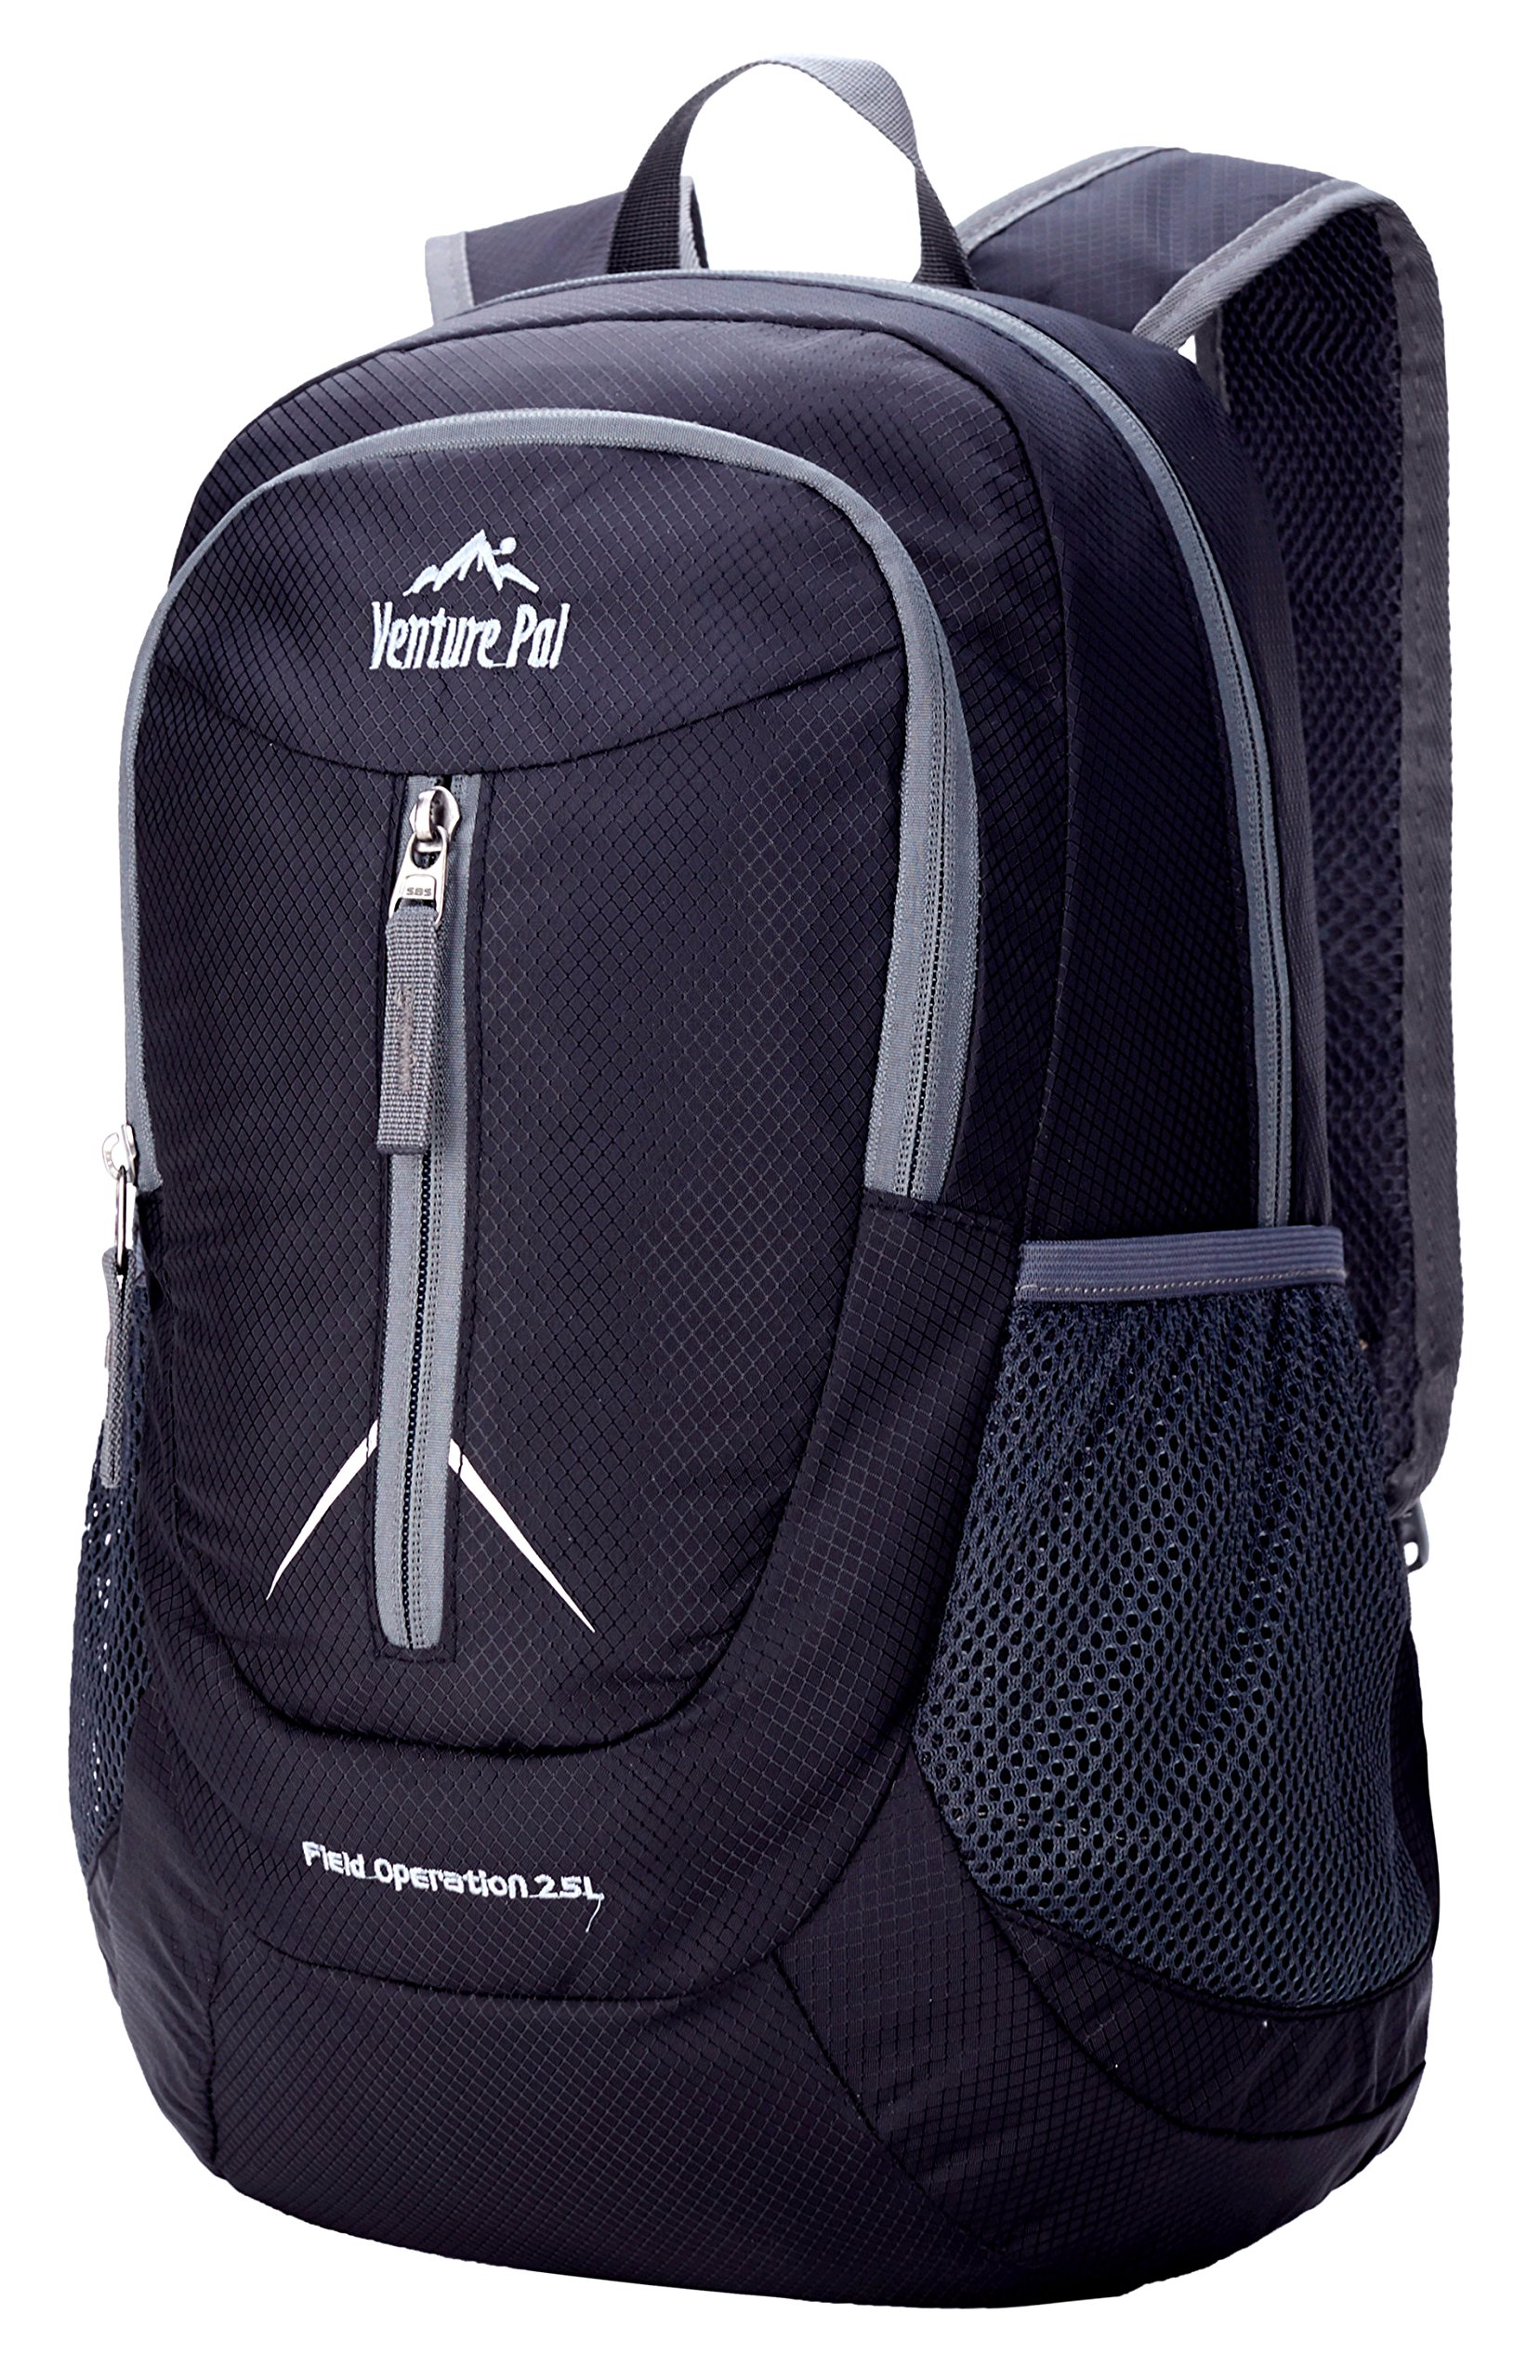 Venture Pal 25L - Durable Packable Lightweight Travel Hiking Backpack Daypack Small Bag for Men Women Kids (Black) by Venture Pal (Image #3)